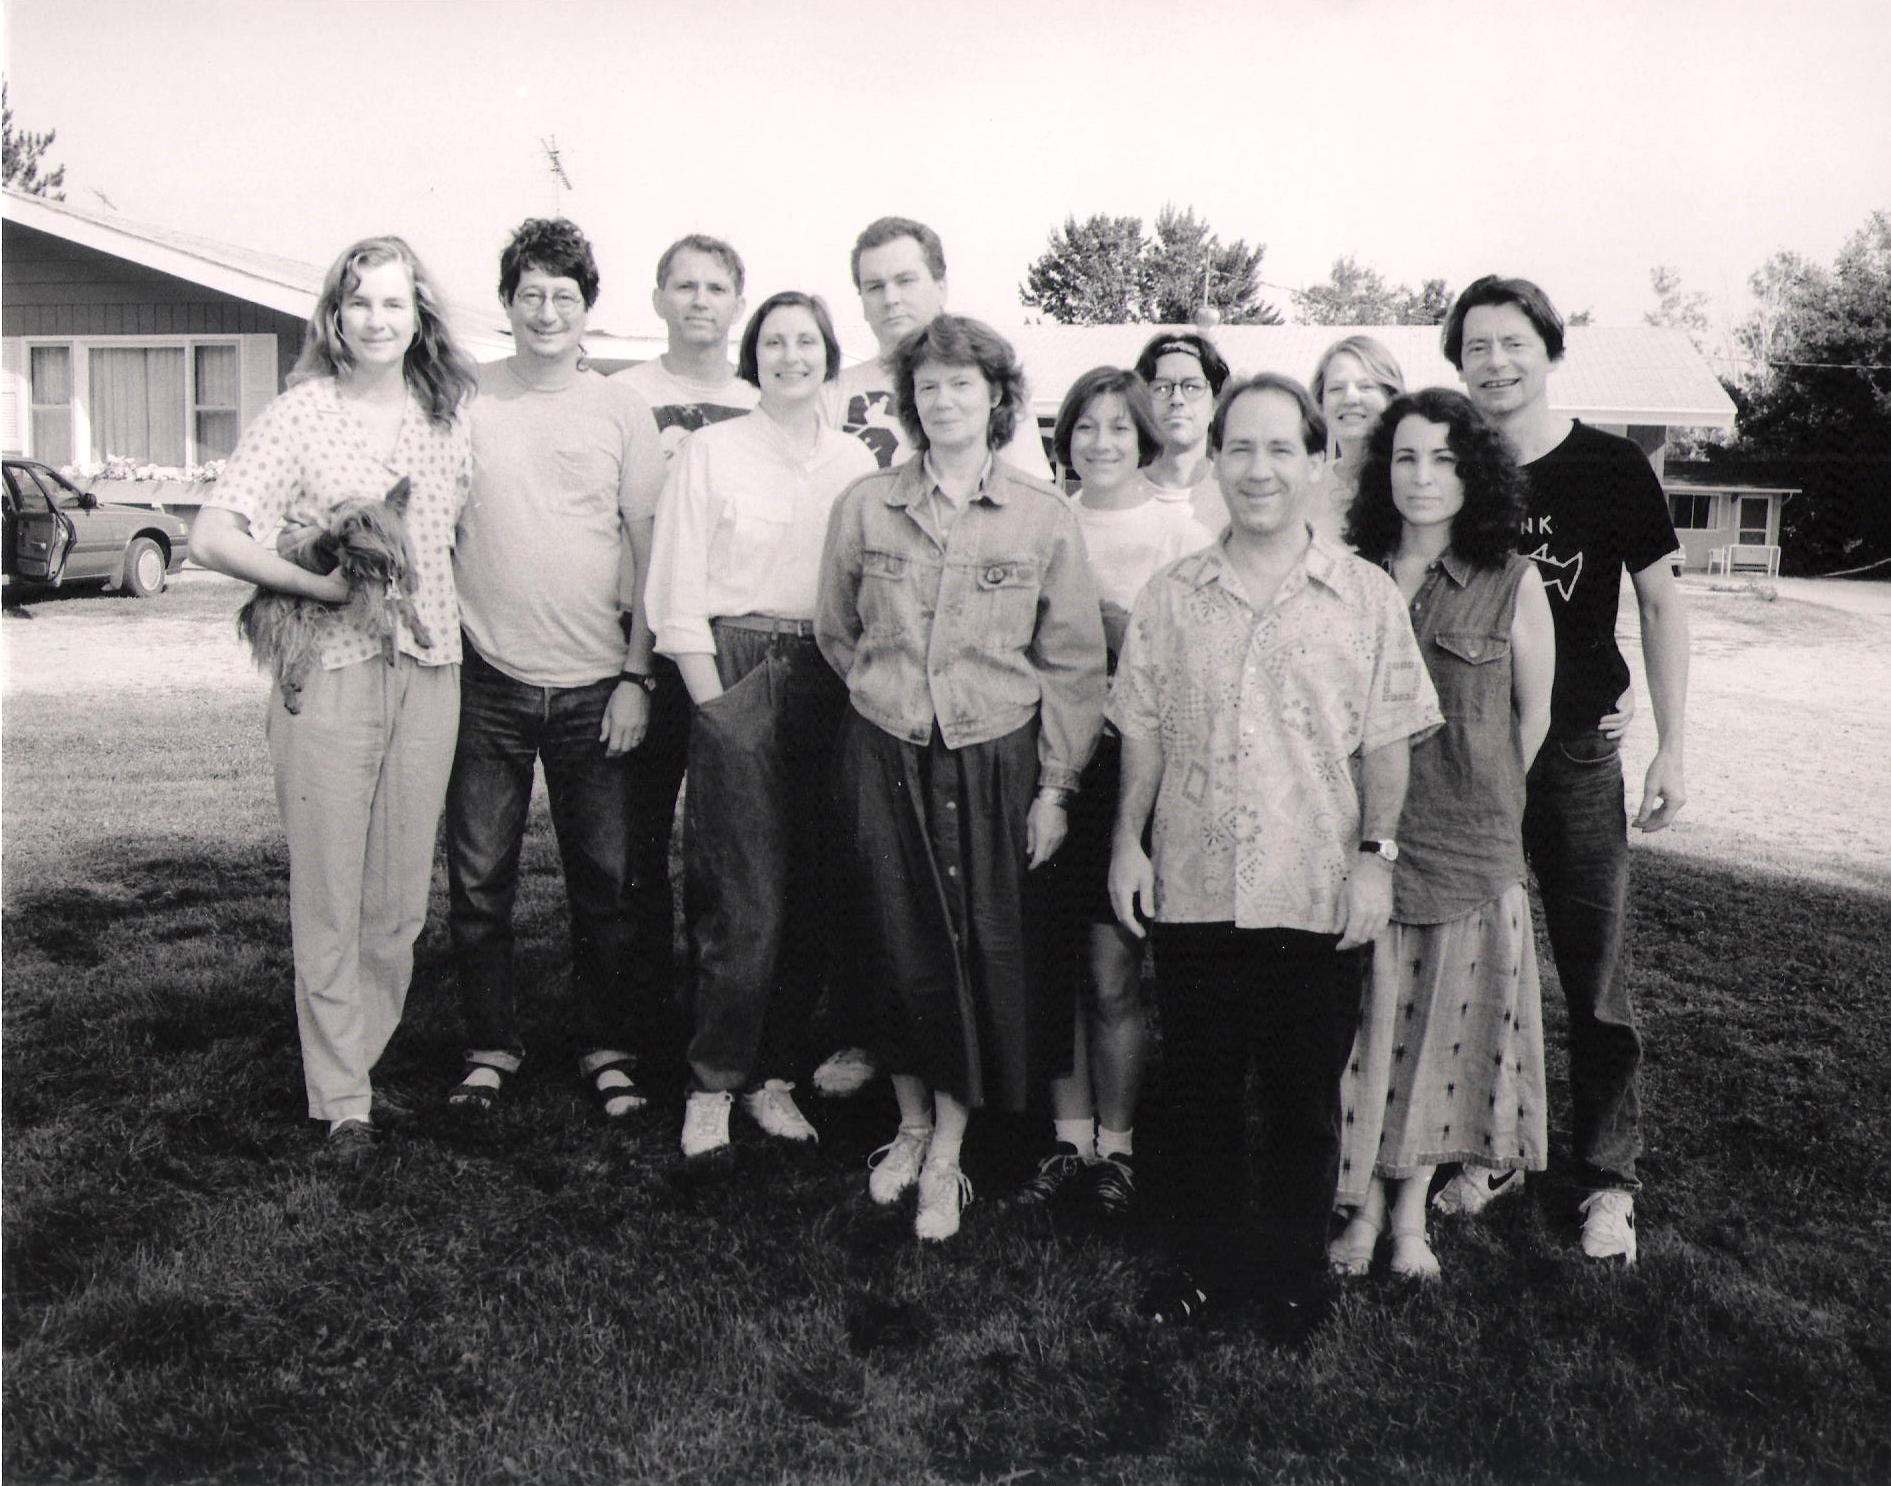 Schneider (center) and other members of Theatre X at the Potowatomi reservation when working on